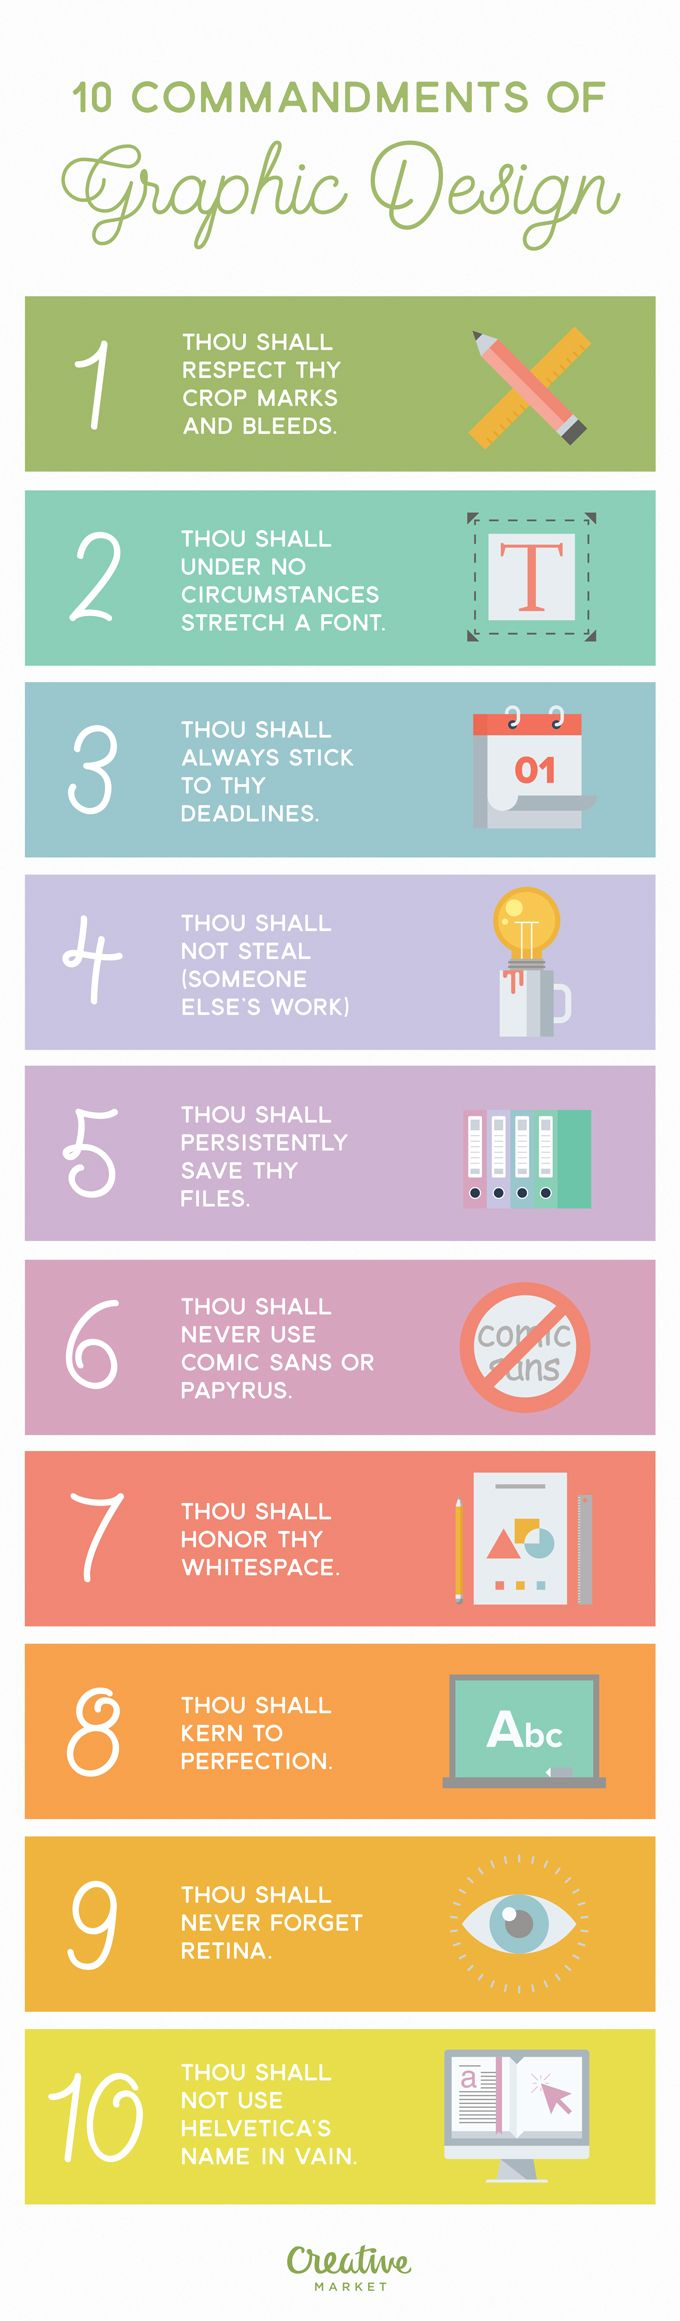 Poster design rules - Infographic 10 Commandments Of Graphic Design